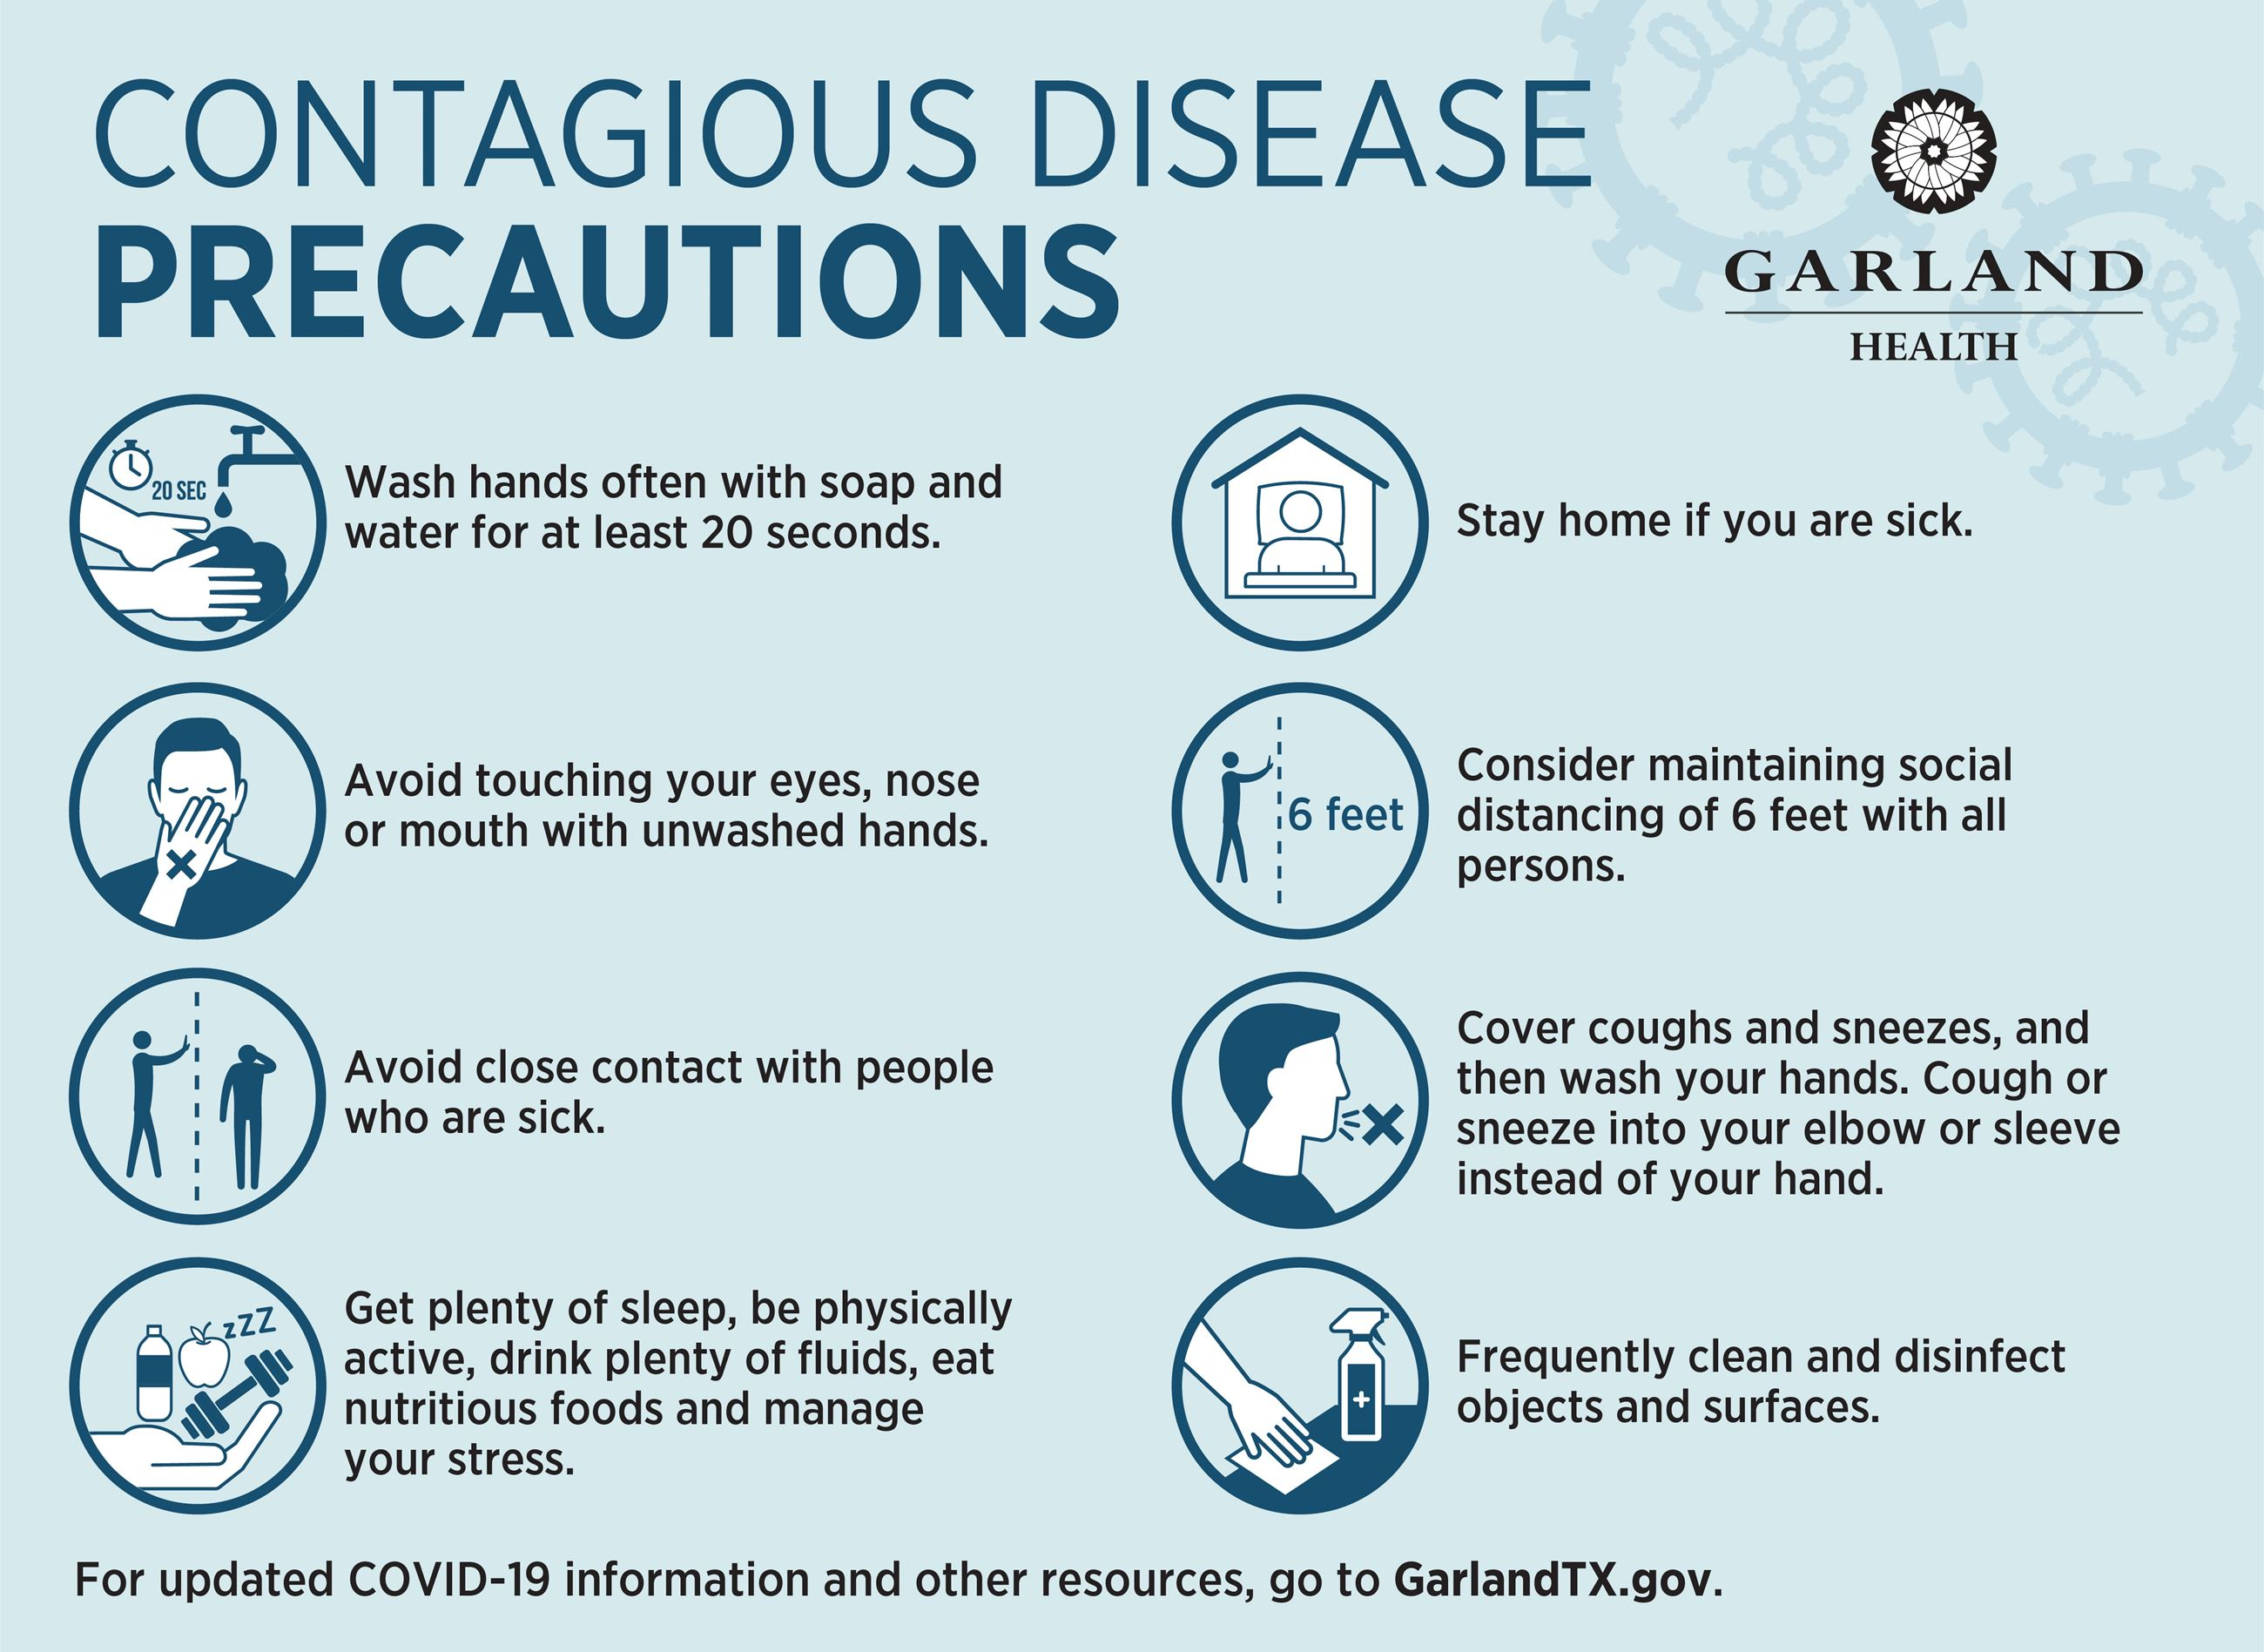 Tips for preventing spread of contagious diseases, such as handwashing, stay home when sick, cover c